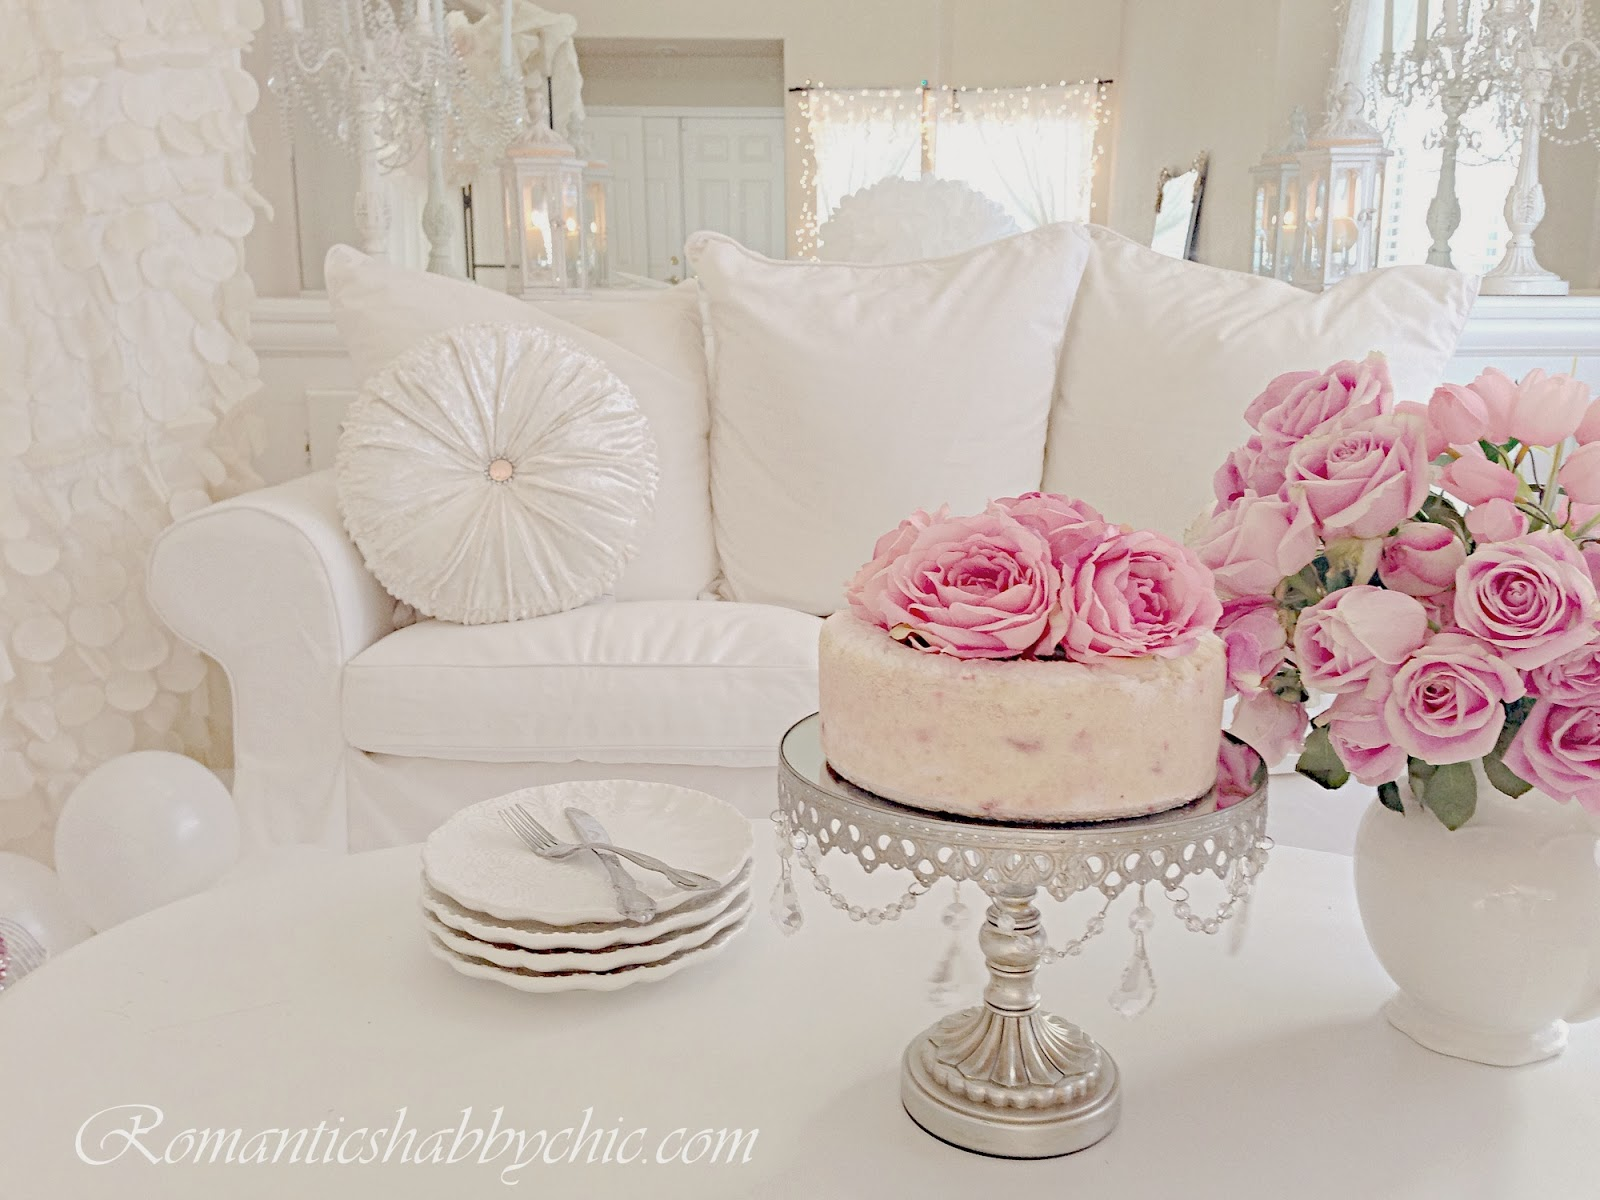 Romantic Shabby Chic Home: Romantic Shabby Chic blog